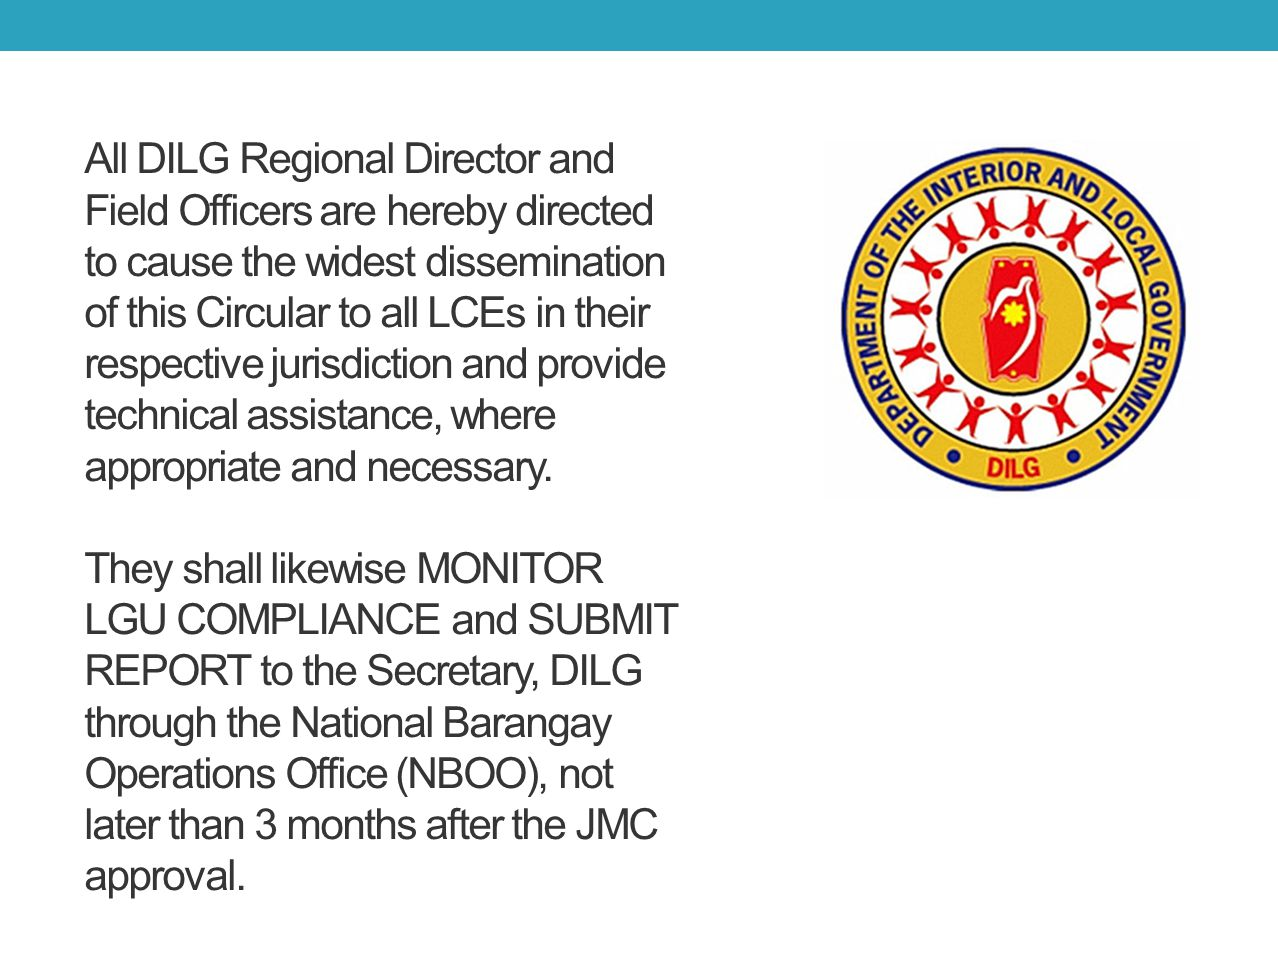 All DILG Regional Director and Field Officers are hereby directed to cause the widest dissemination of this Circular to all LCEs in their respective jurisdiction and provide technical assistance, where appropriate and necessary.